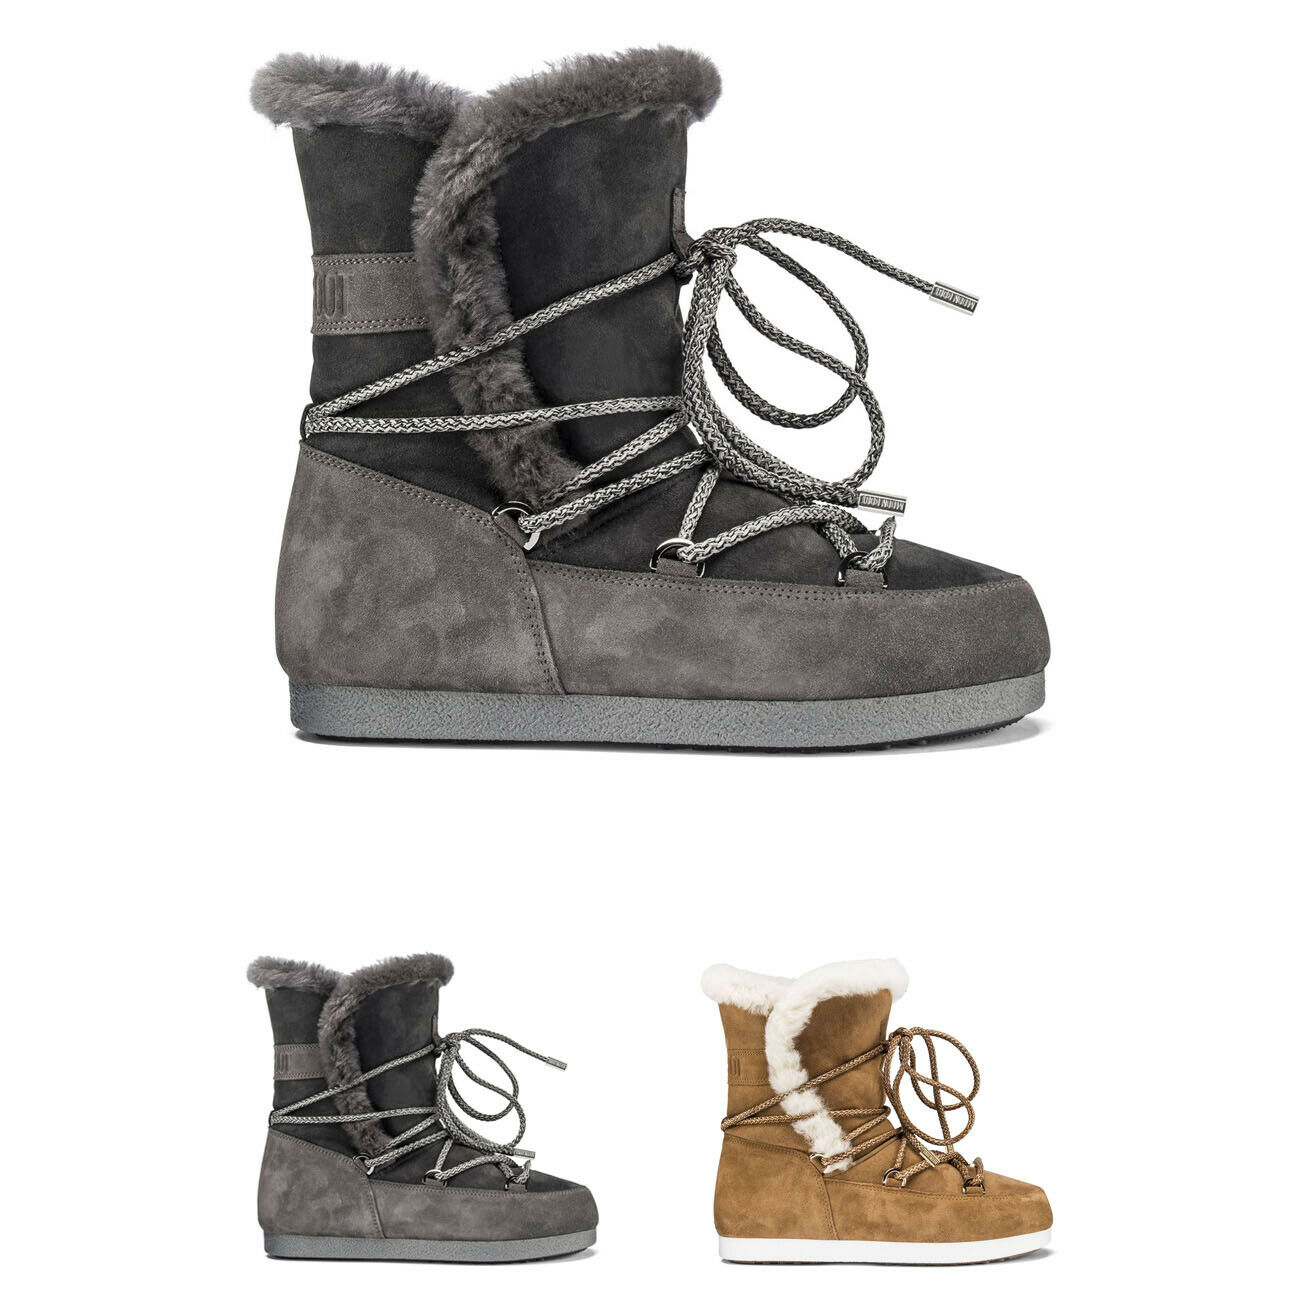 Womens Tecnica Moon Boot Far Side High Shearling Faux Fur Winter Boots US 5.5-10